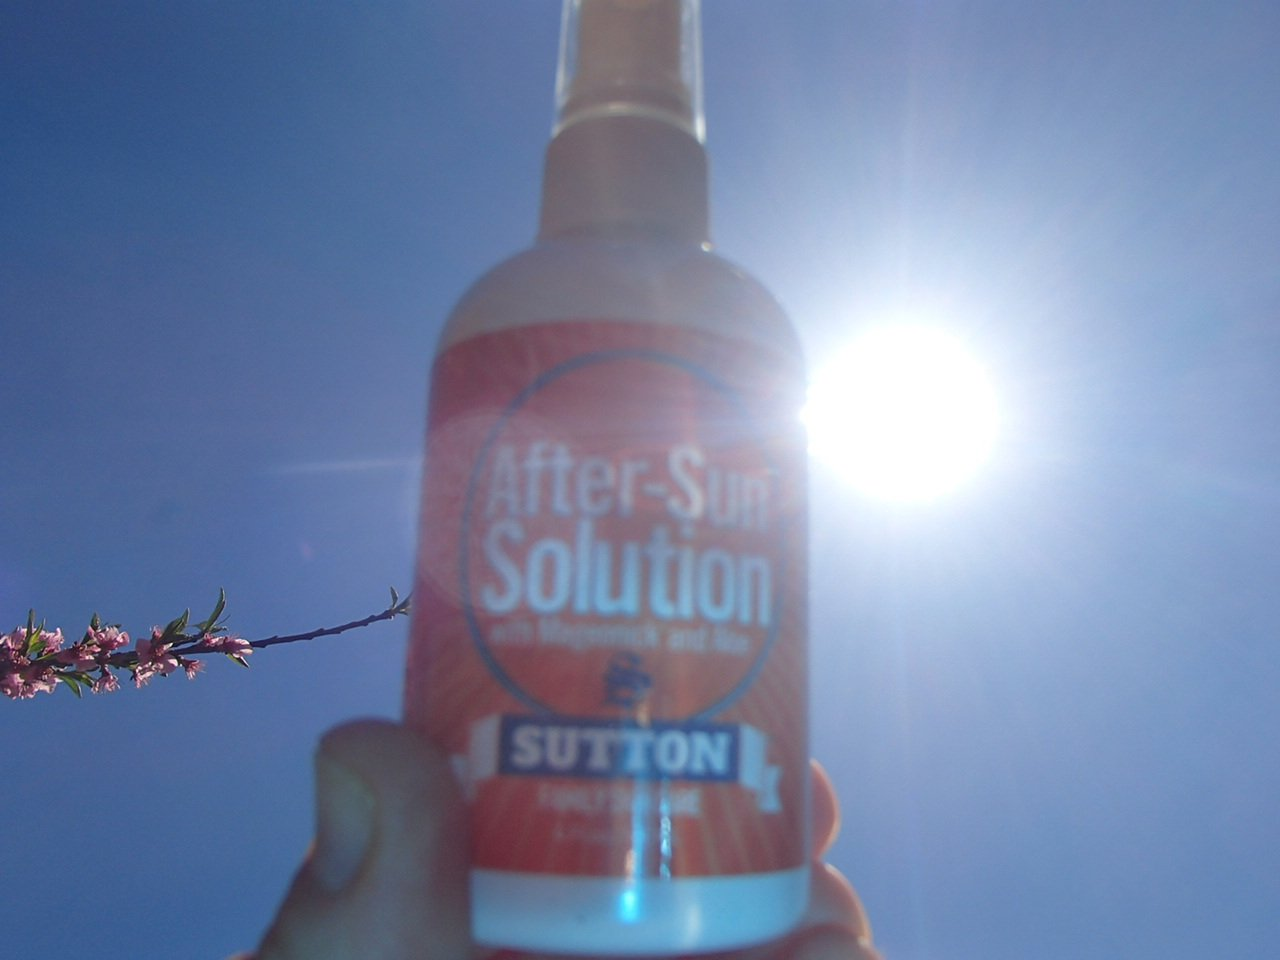 Sunburn Relief Spray Premium After-Sun Solution Soothes Skin Over-Exposed to The Sun. Easy Glycerin-Based Spray-On with Squalene, Urea and Allantoin Moisturizing Factors for Natural, Healthy Skin. by Sutton Family Skin Care (Image #8)